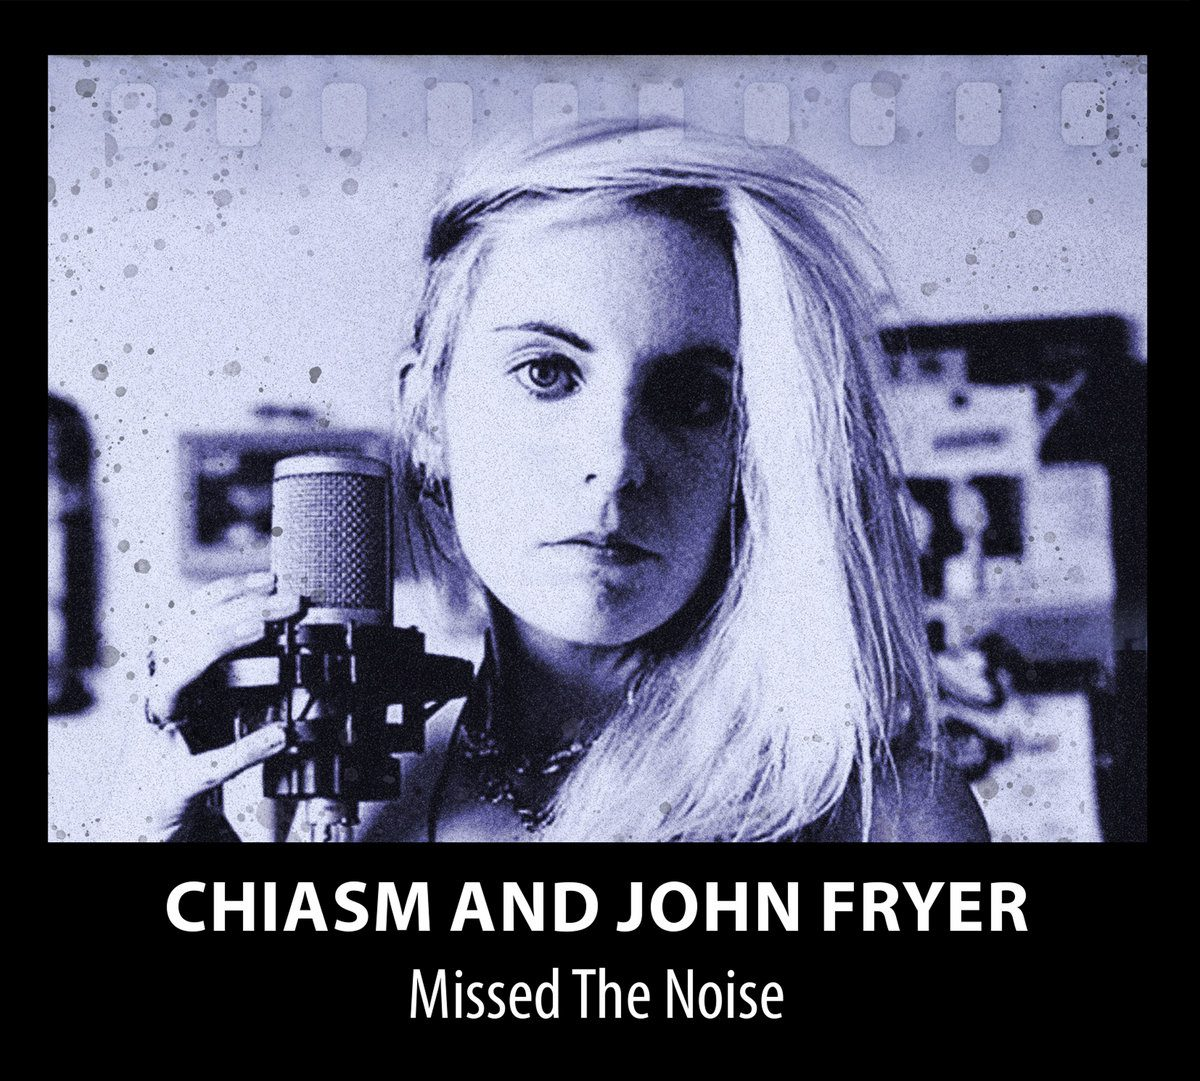 Chiasm and John Fryer to release debut album 'Missed The Noise' on March 5 - new single 'Intertwined' out now